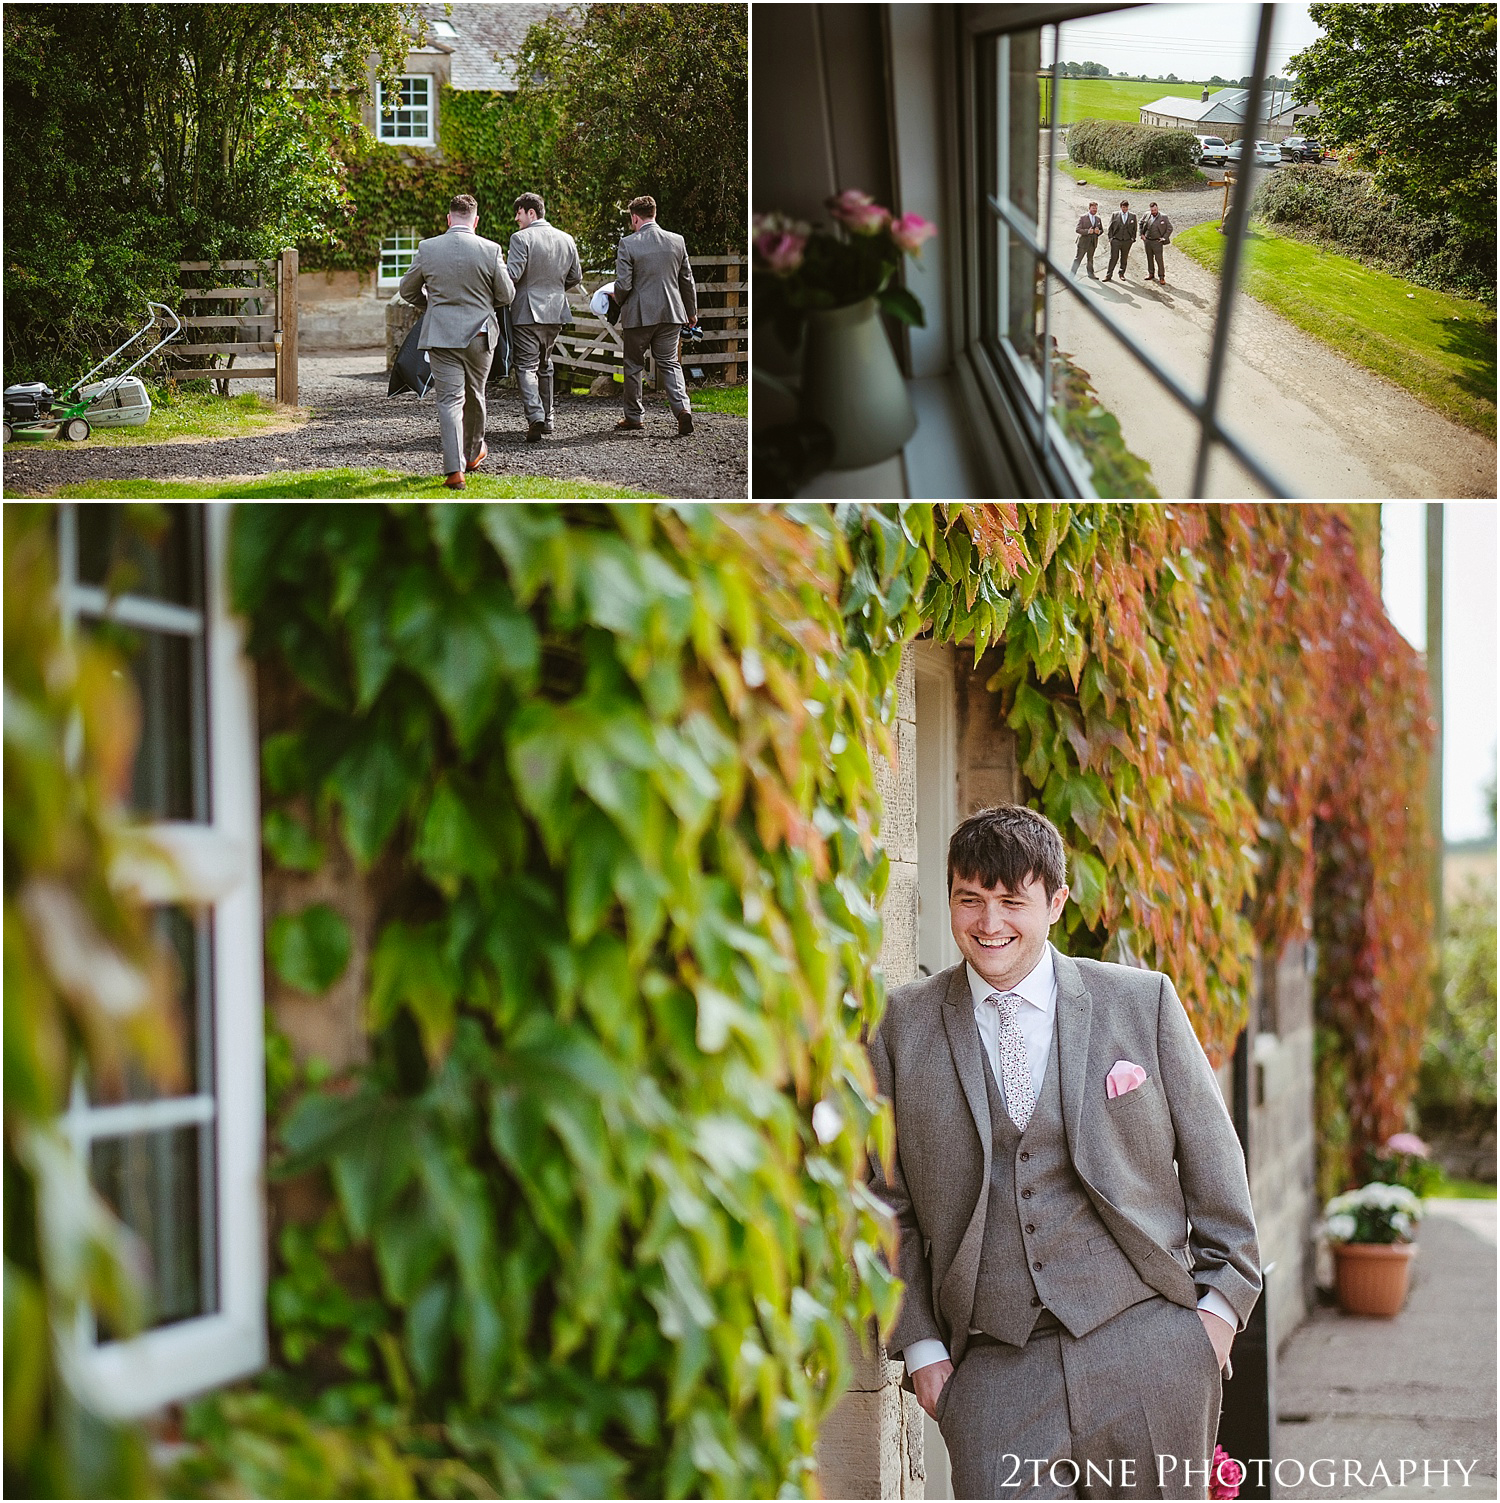 Doxford barns wedding photographer 014.jpg